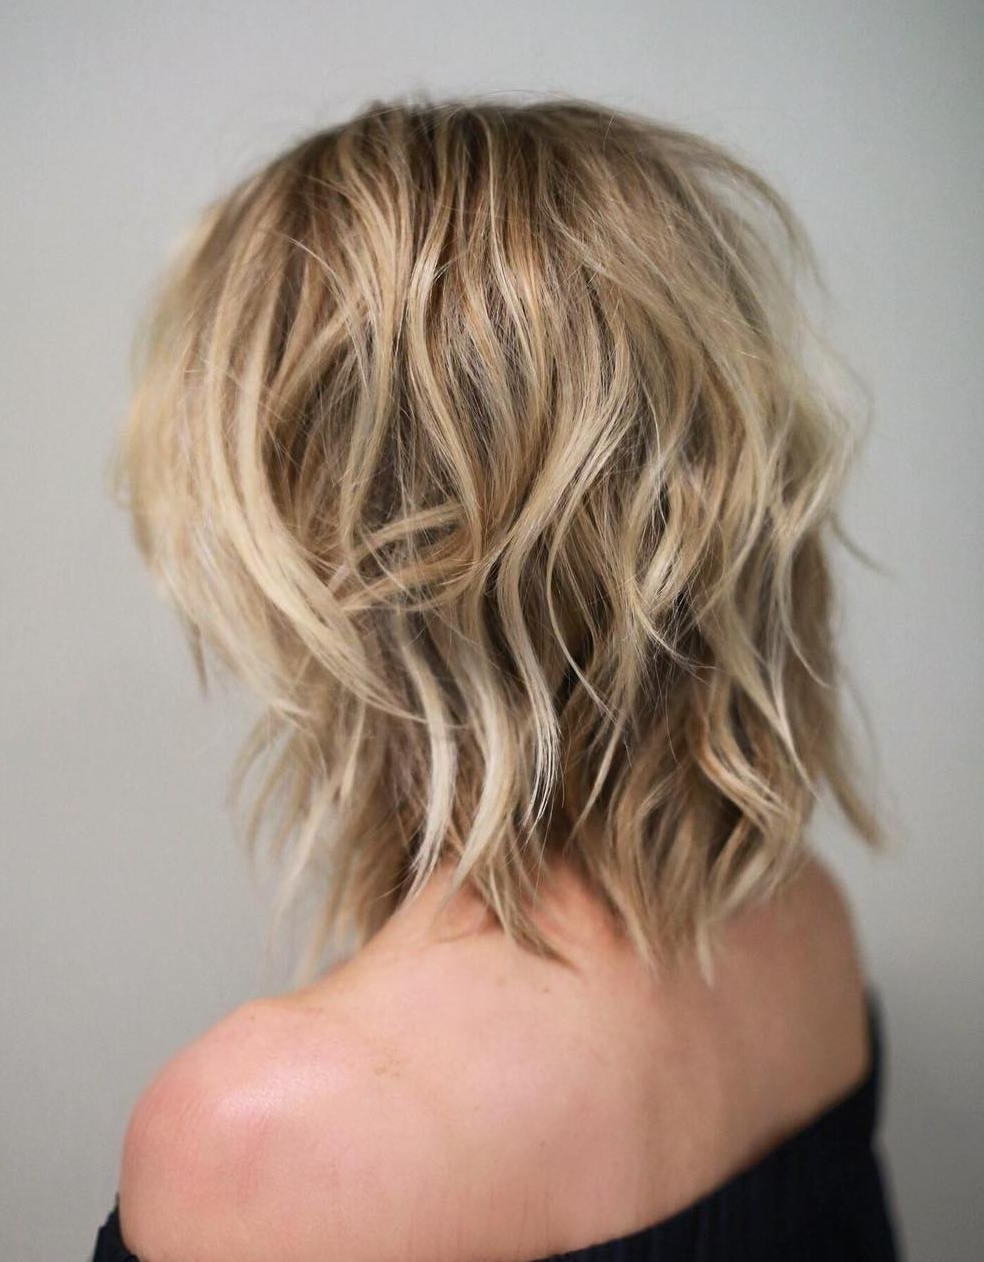 50 Best Variations Of A Medium Shag Haircut For Your Distinctive Style With Regard To Most Popular Medium Shaggy Hairstyles For Thin Hair (View 2 of 15)